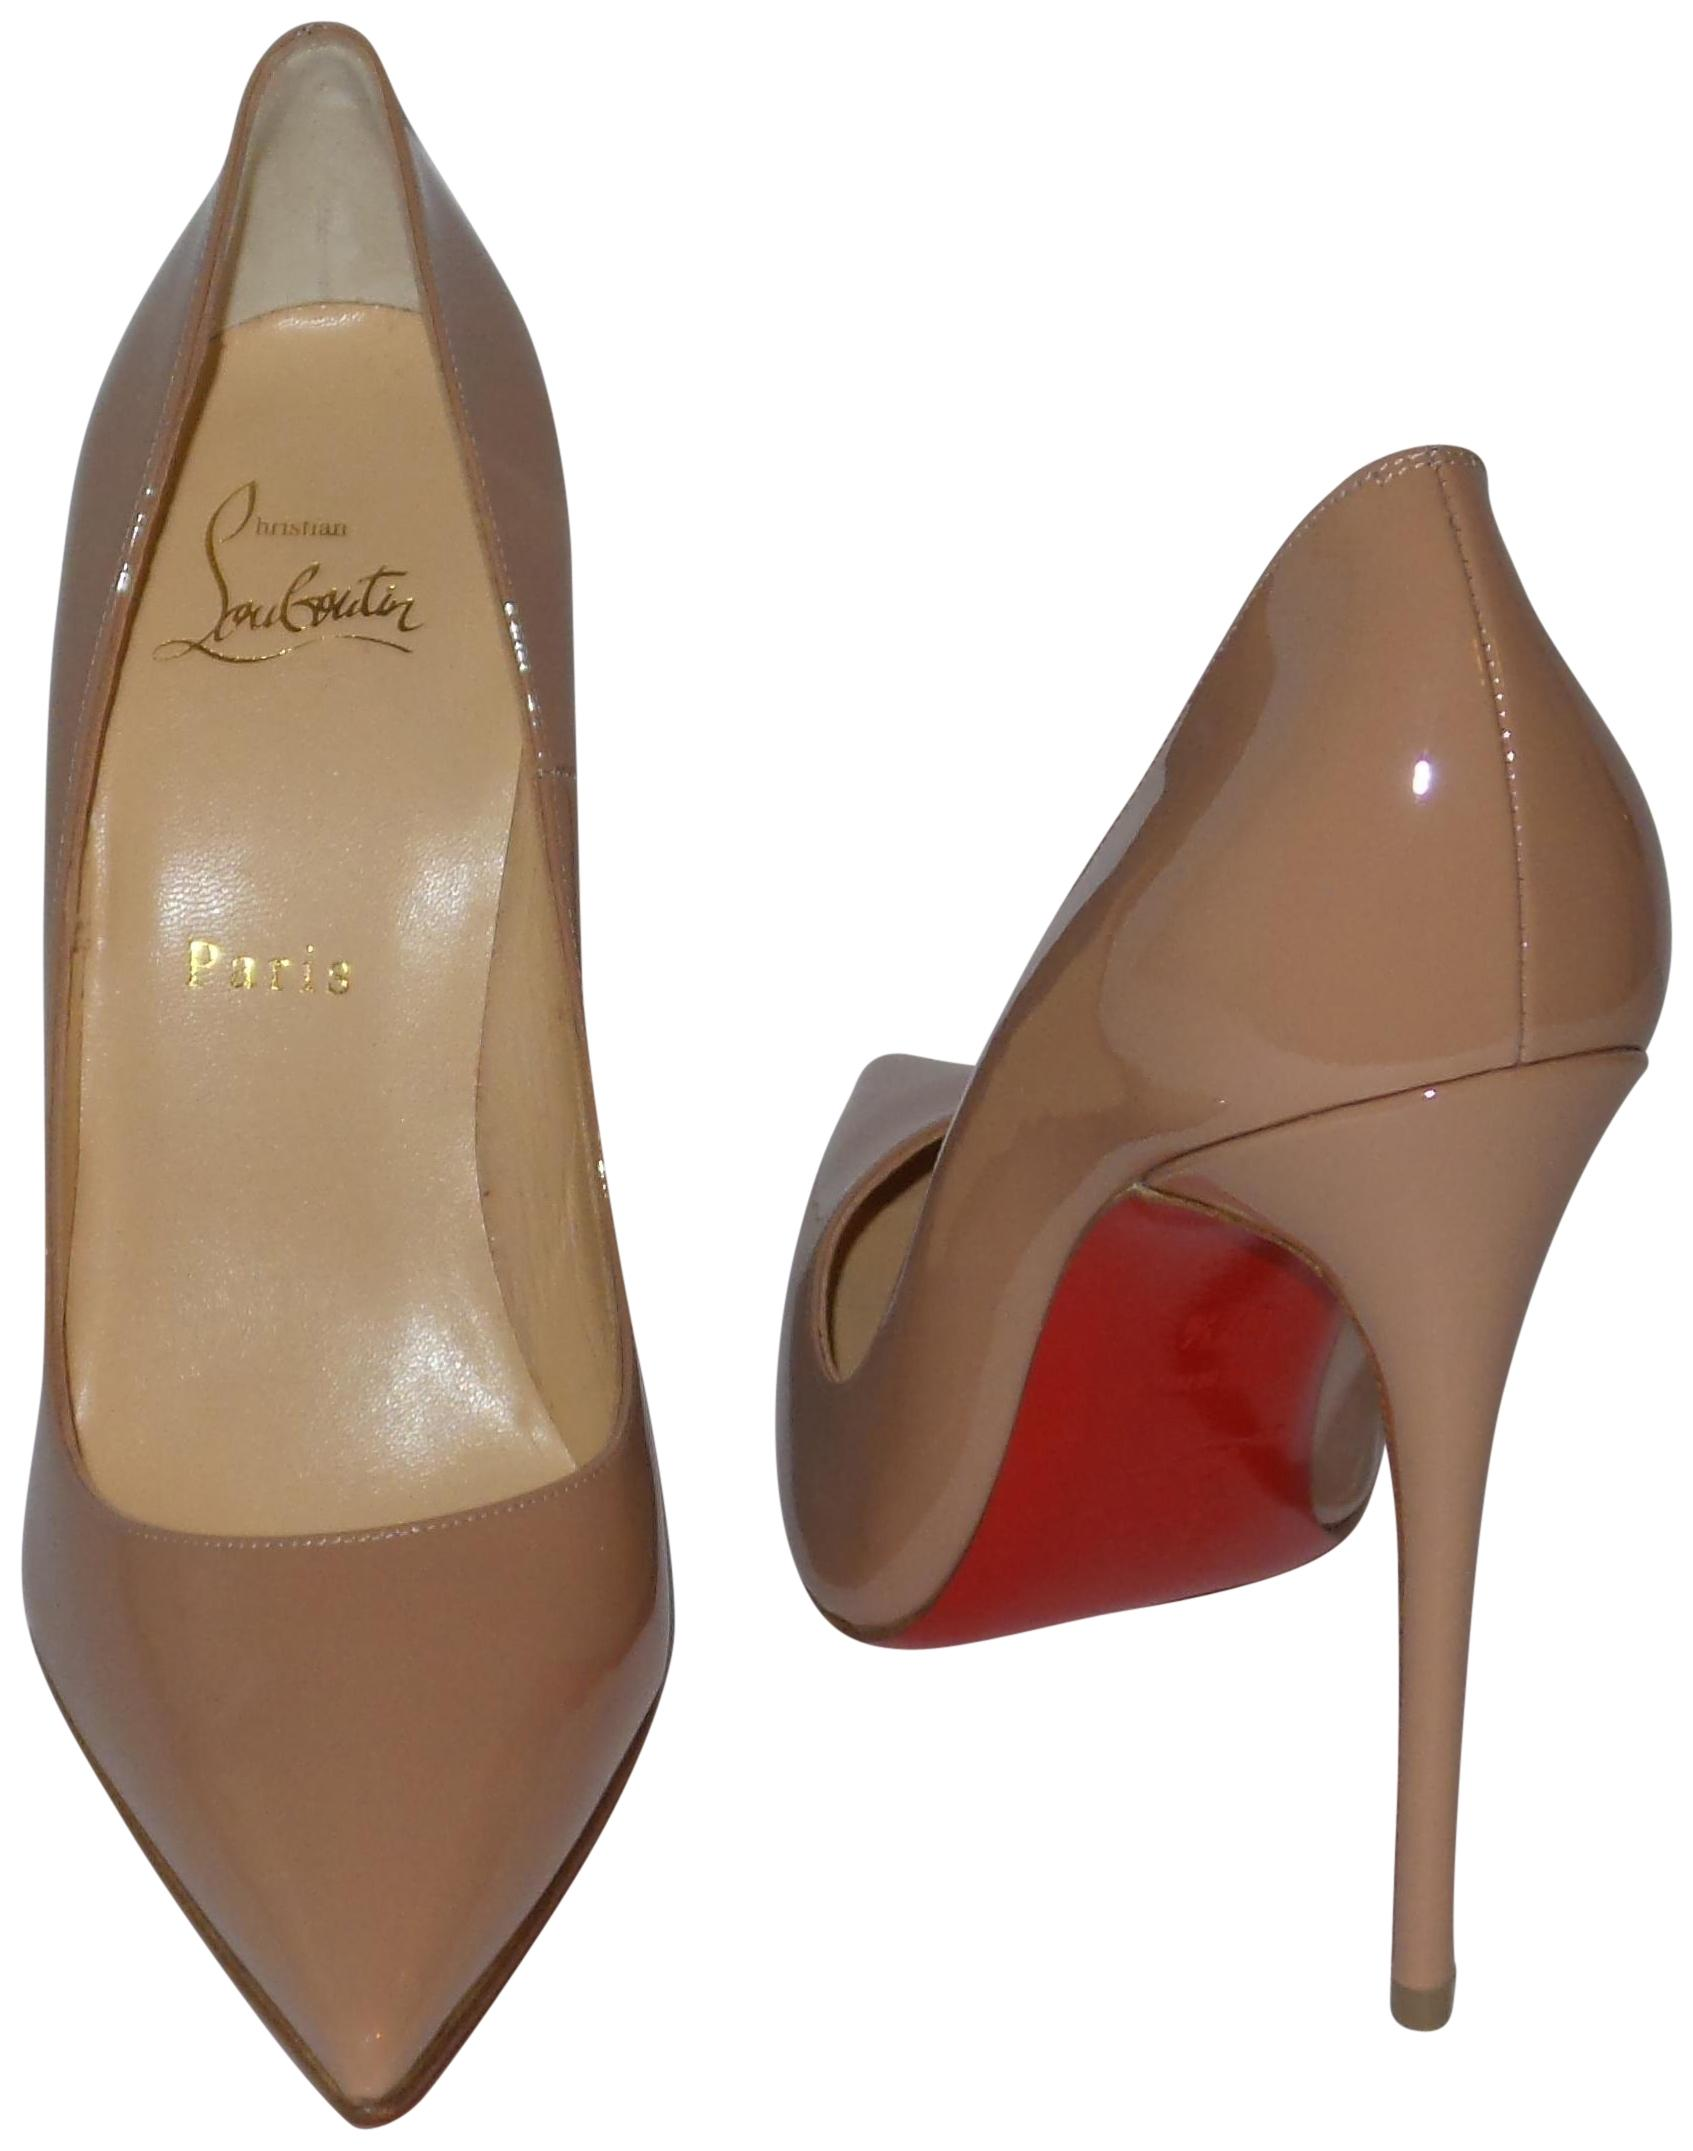 3035552c2f32 Christian Louboutin Nude So Kate Kate Kate 120 Patent Leather Pumps Size EU  37.5 (Approx. US 7.5) Regular (M